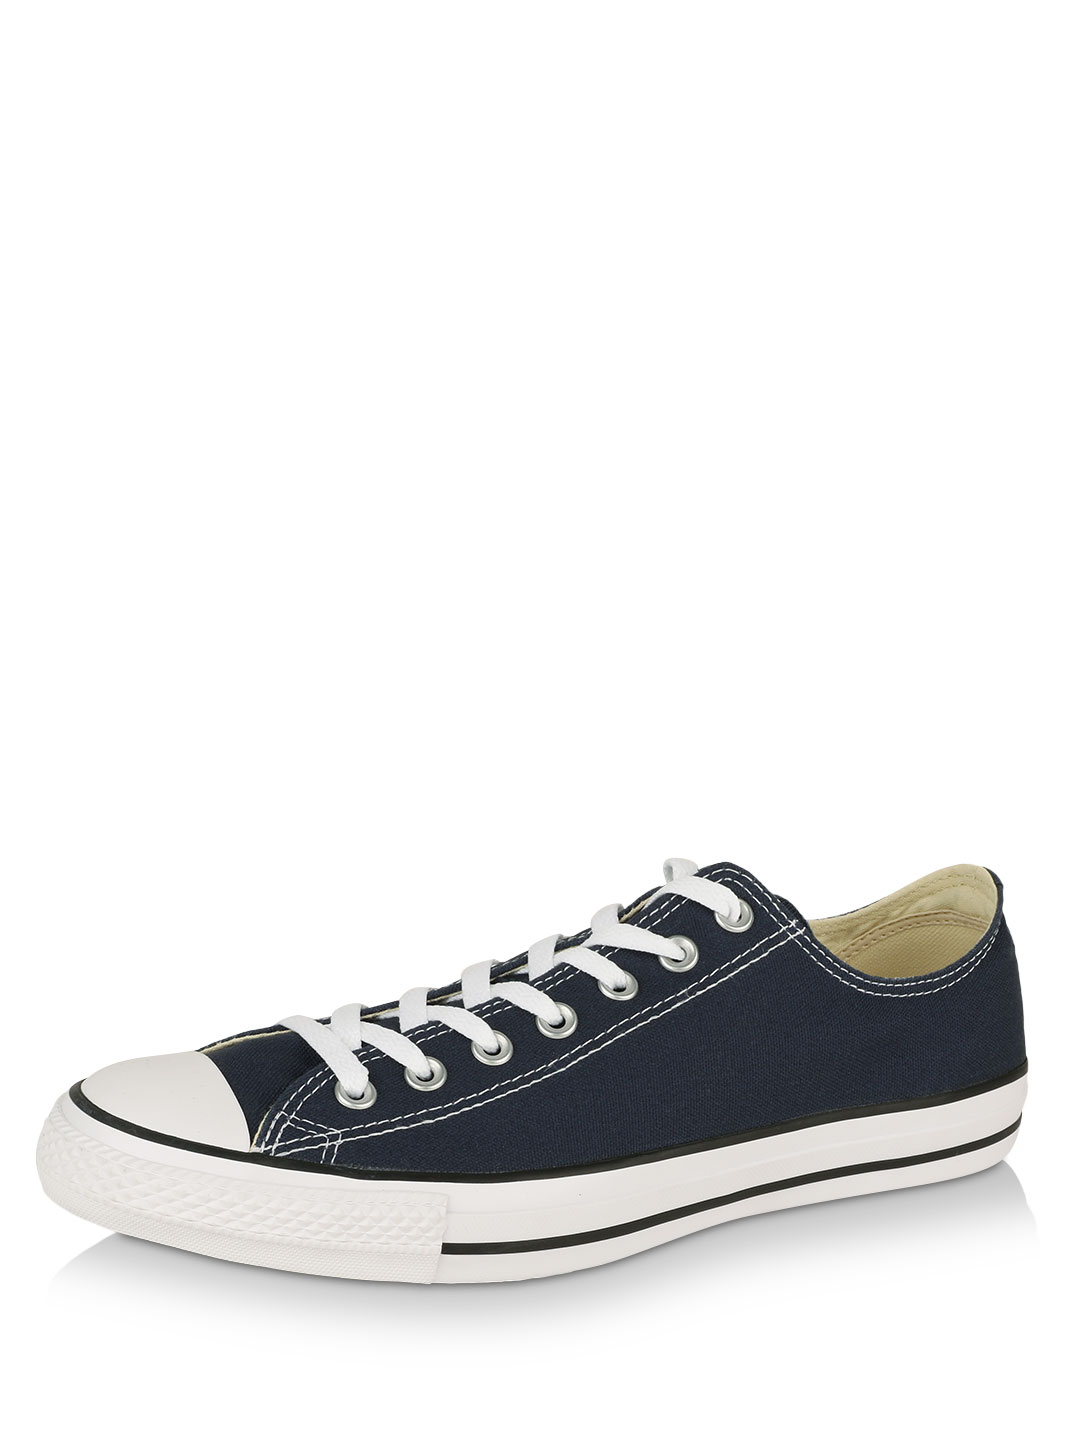 Converse Navy New Improved All Star Trainers 1